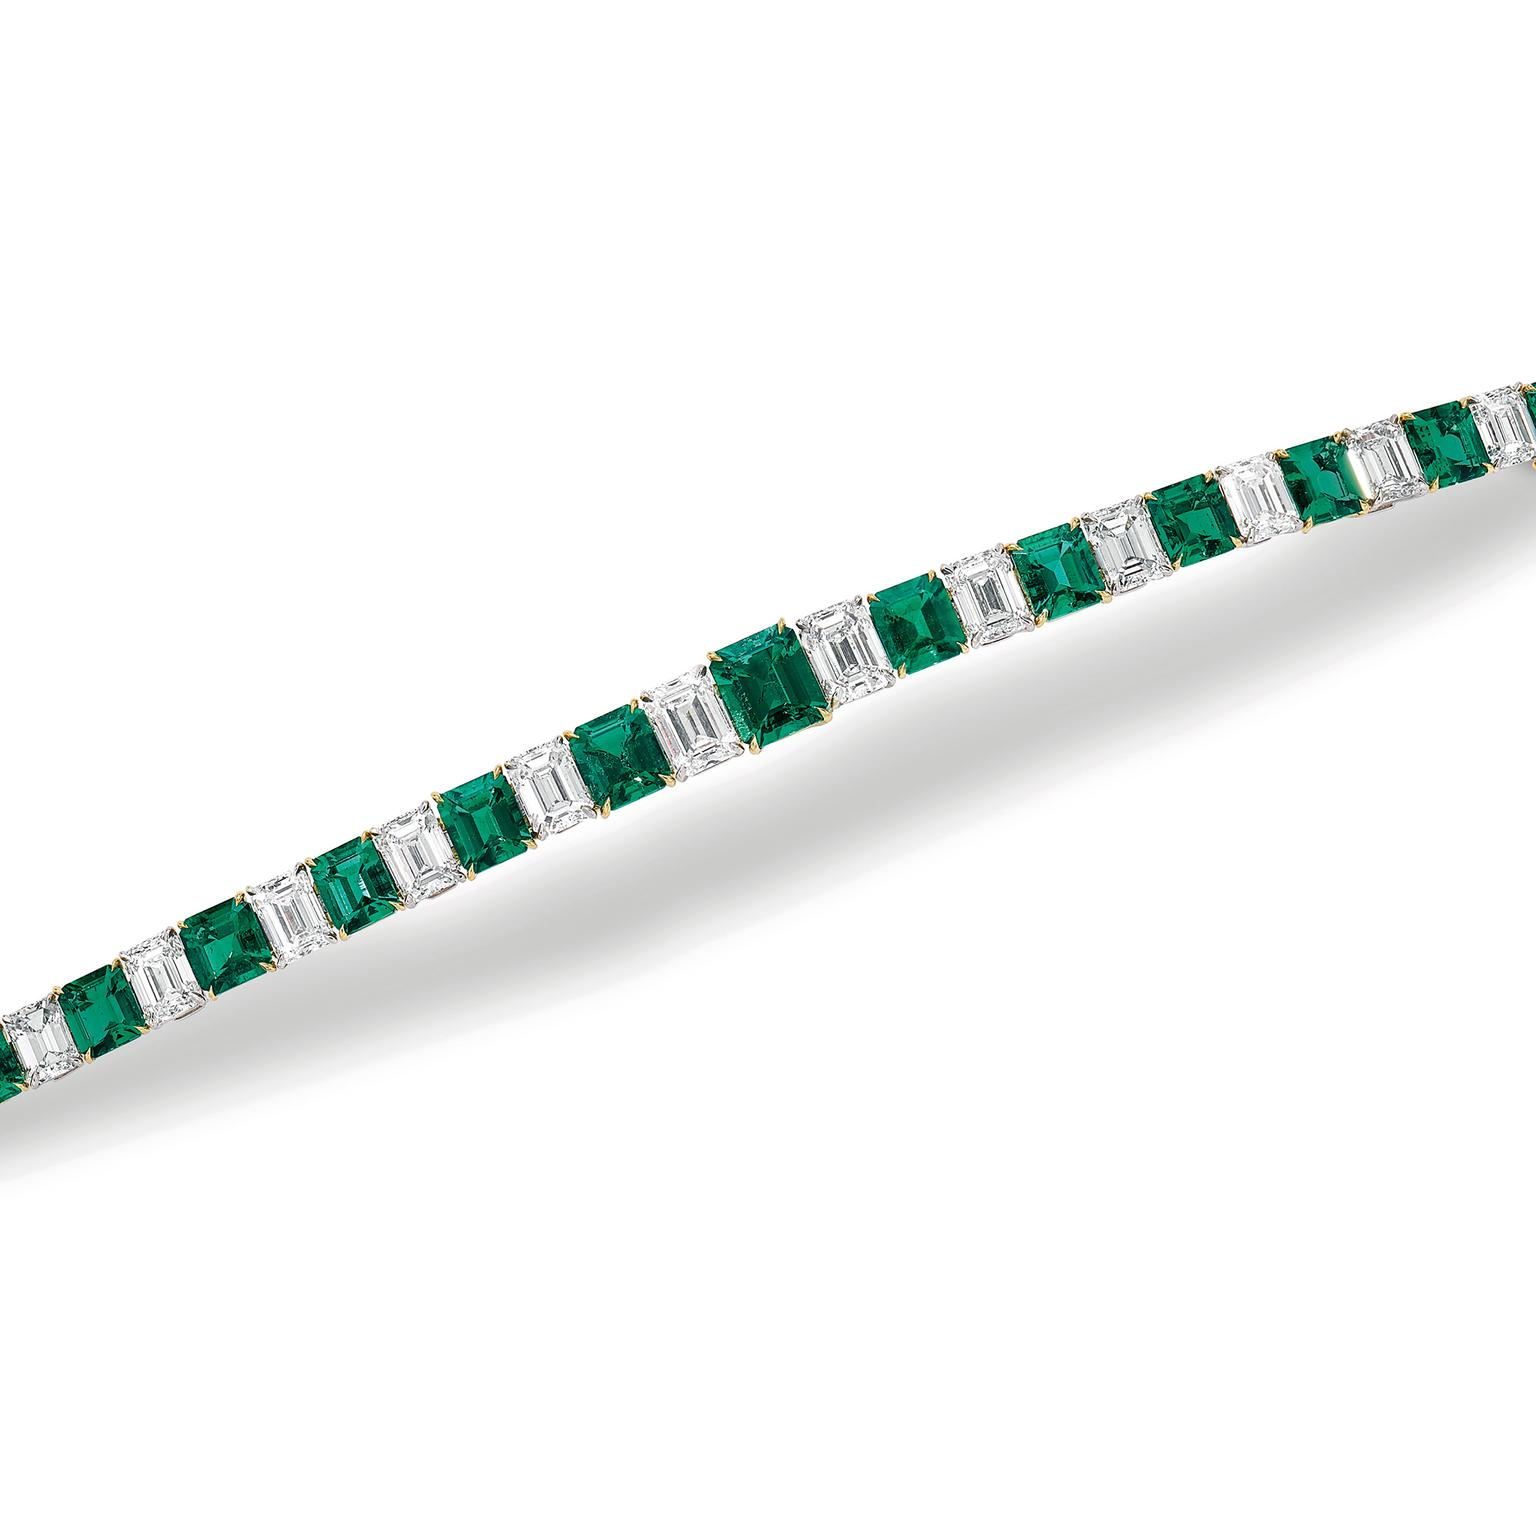 Lot 582 Emerald and diamonds bracelet Phillips auction